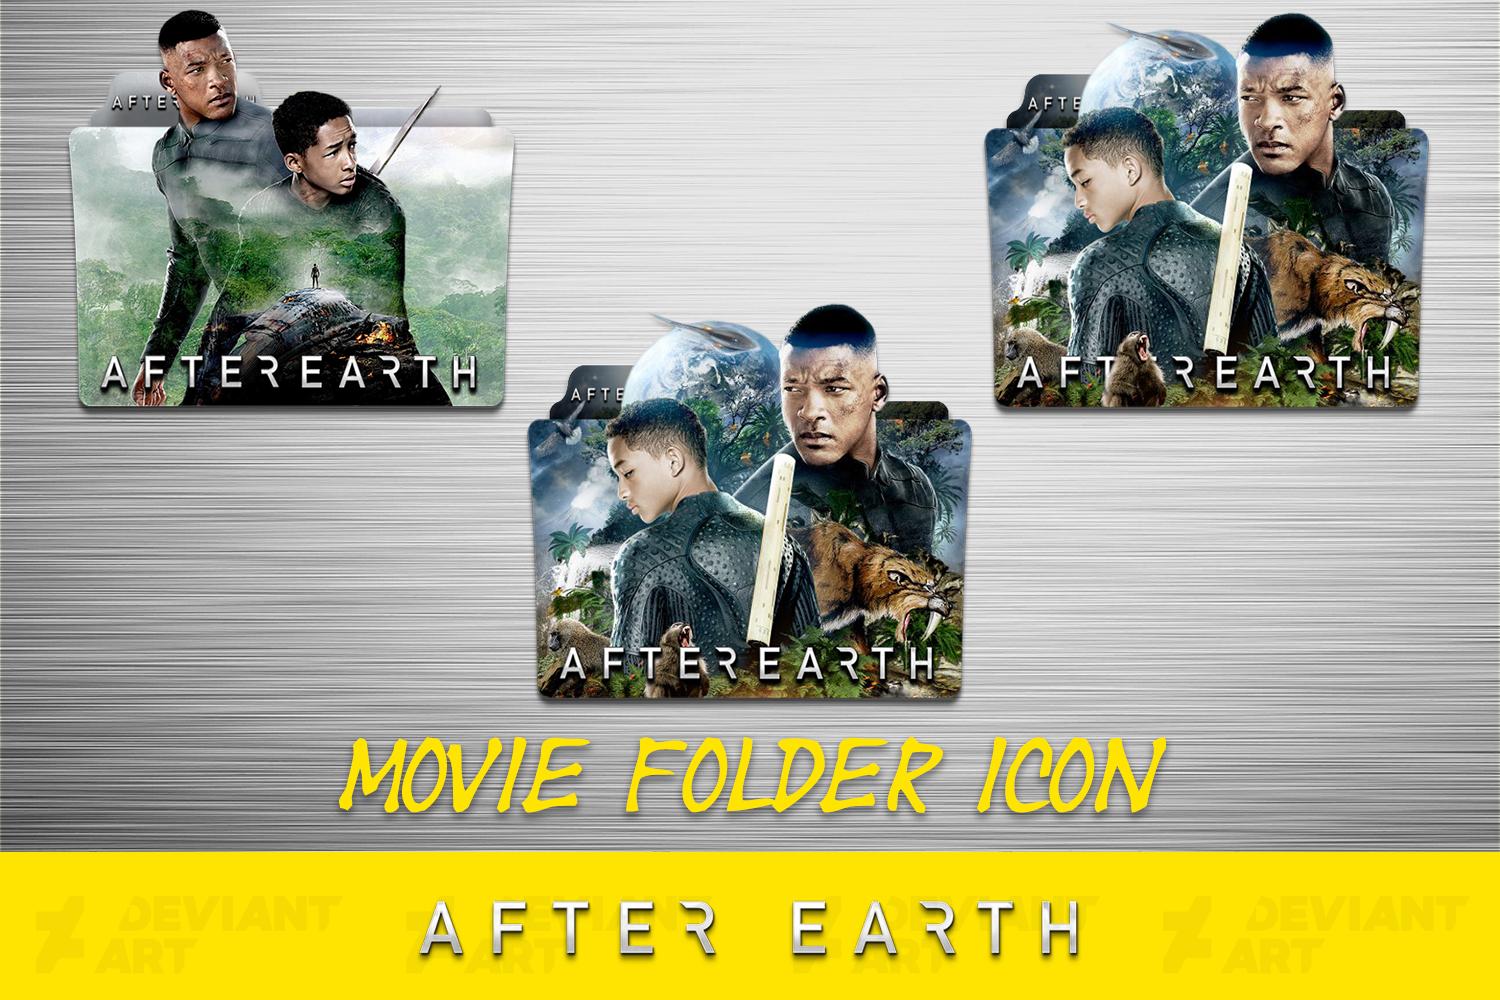 After Earth 2013 Folder Icon Pack By Ahmternbrs60 On Deviantart